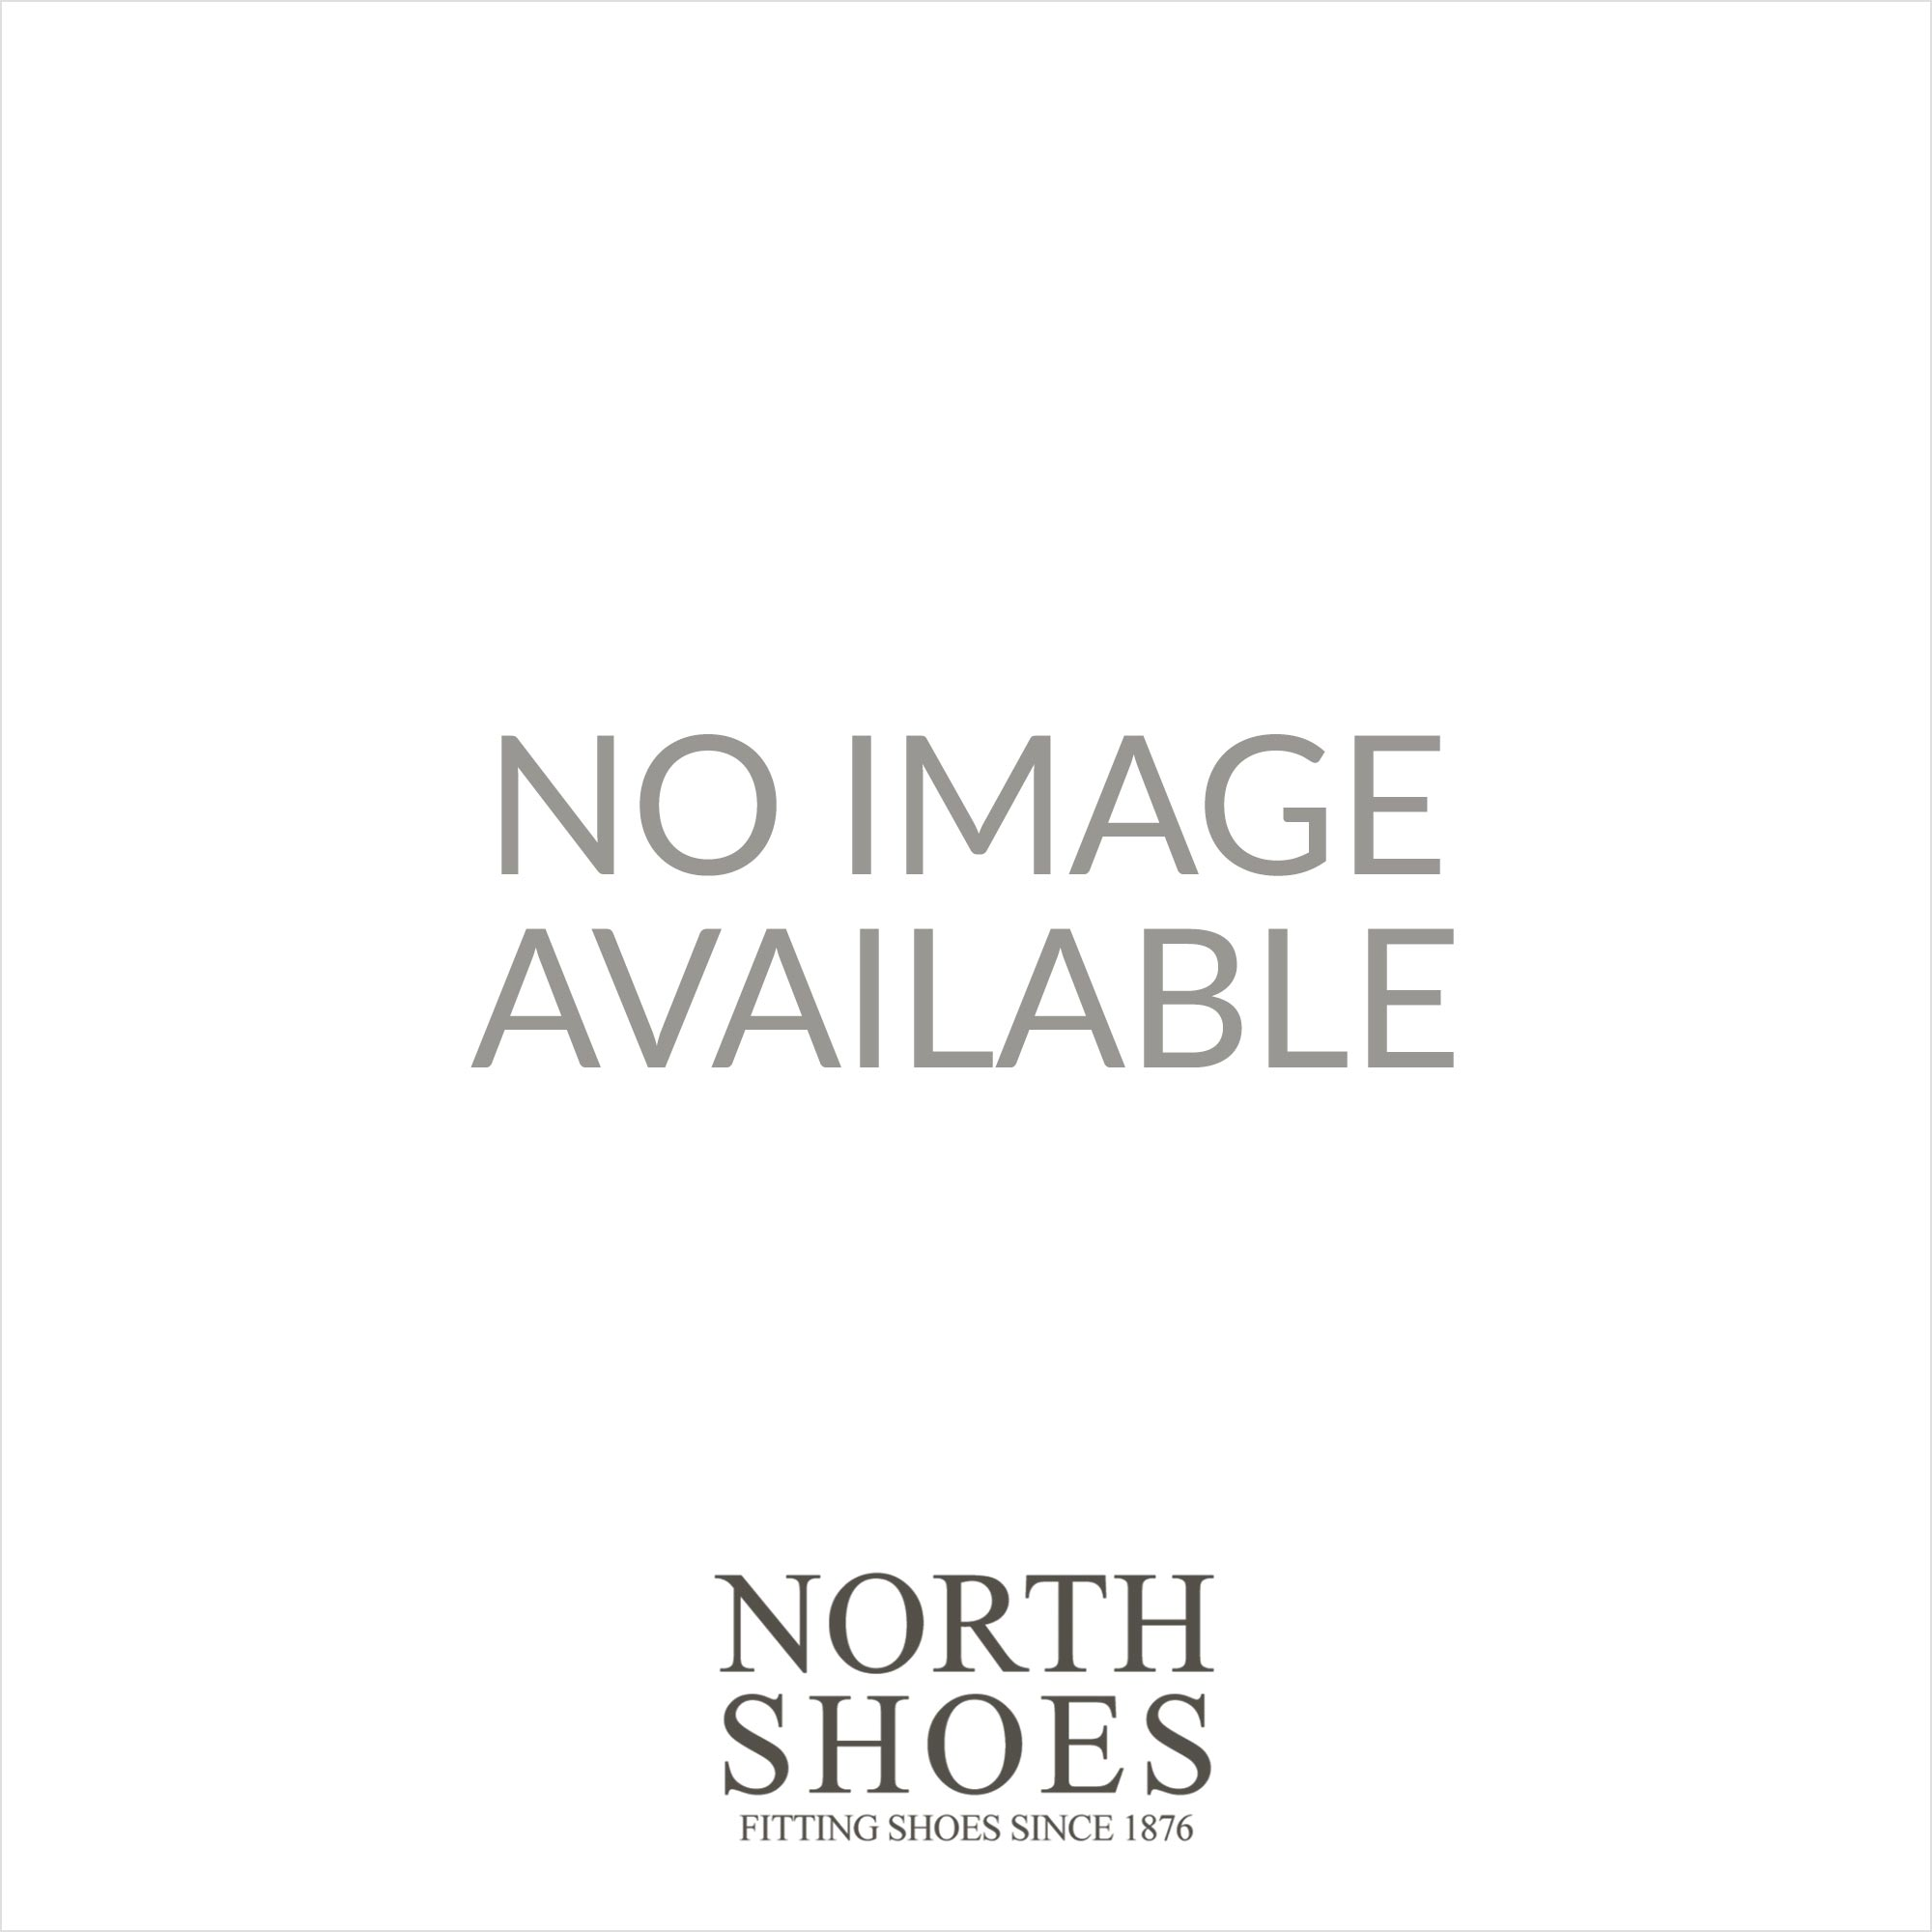 skechers 65493 navy canvas mens lace up casual shoe